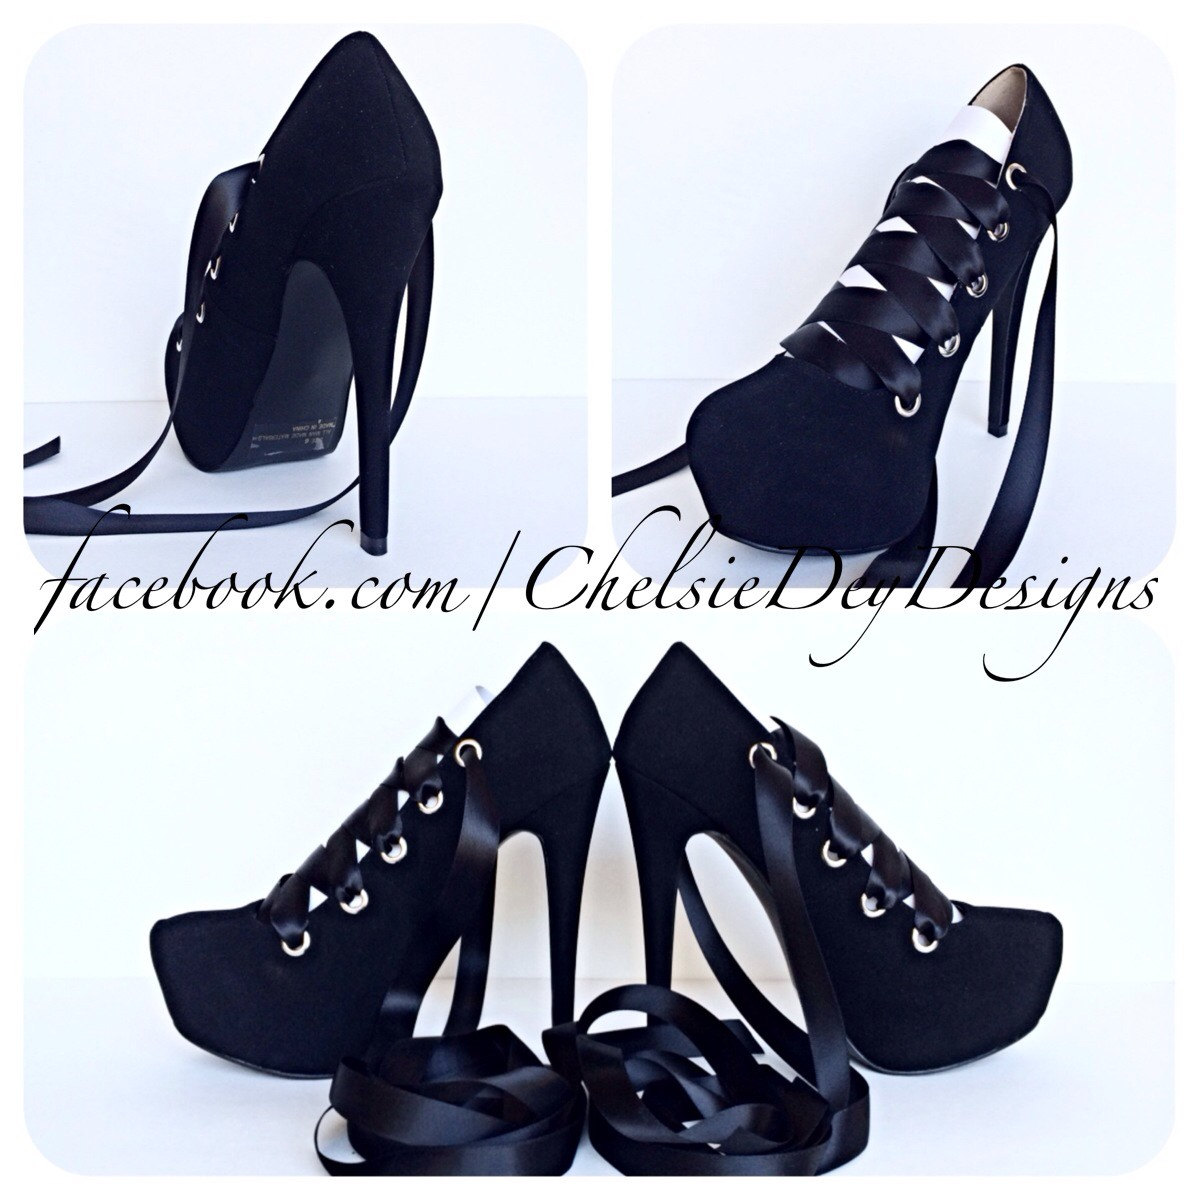 40957ca8427 Black High Heels, Faux Suede Corset Pumps, Laced Ribbon Ballerina Shoes  from Chelsie Dey Designs